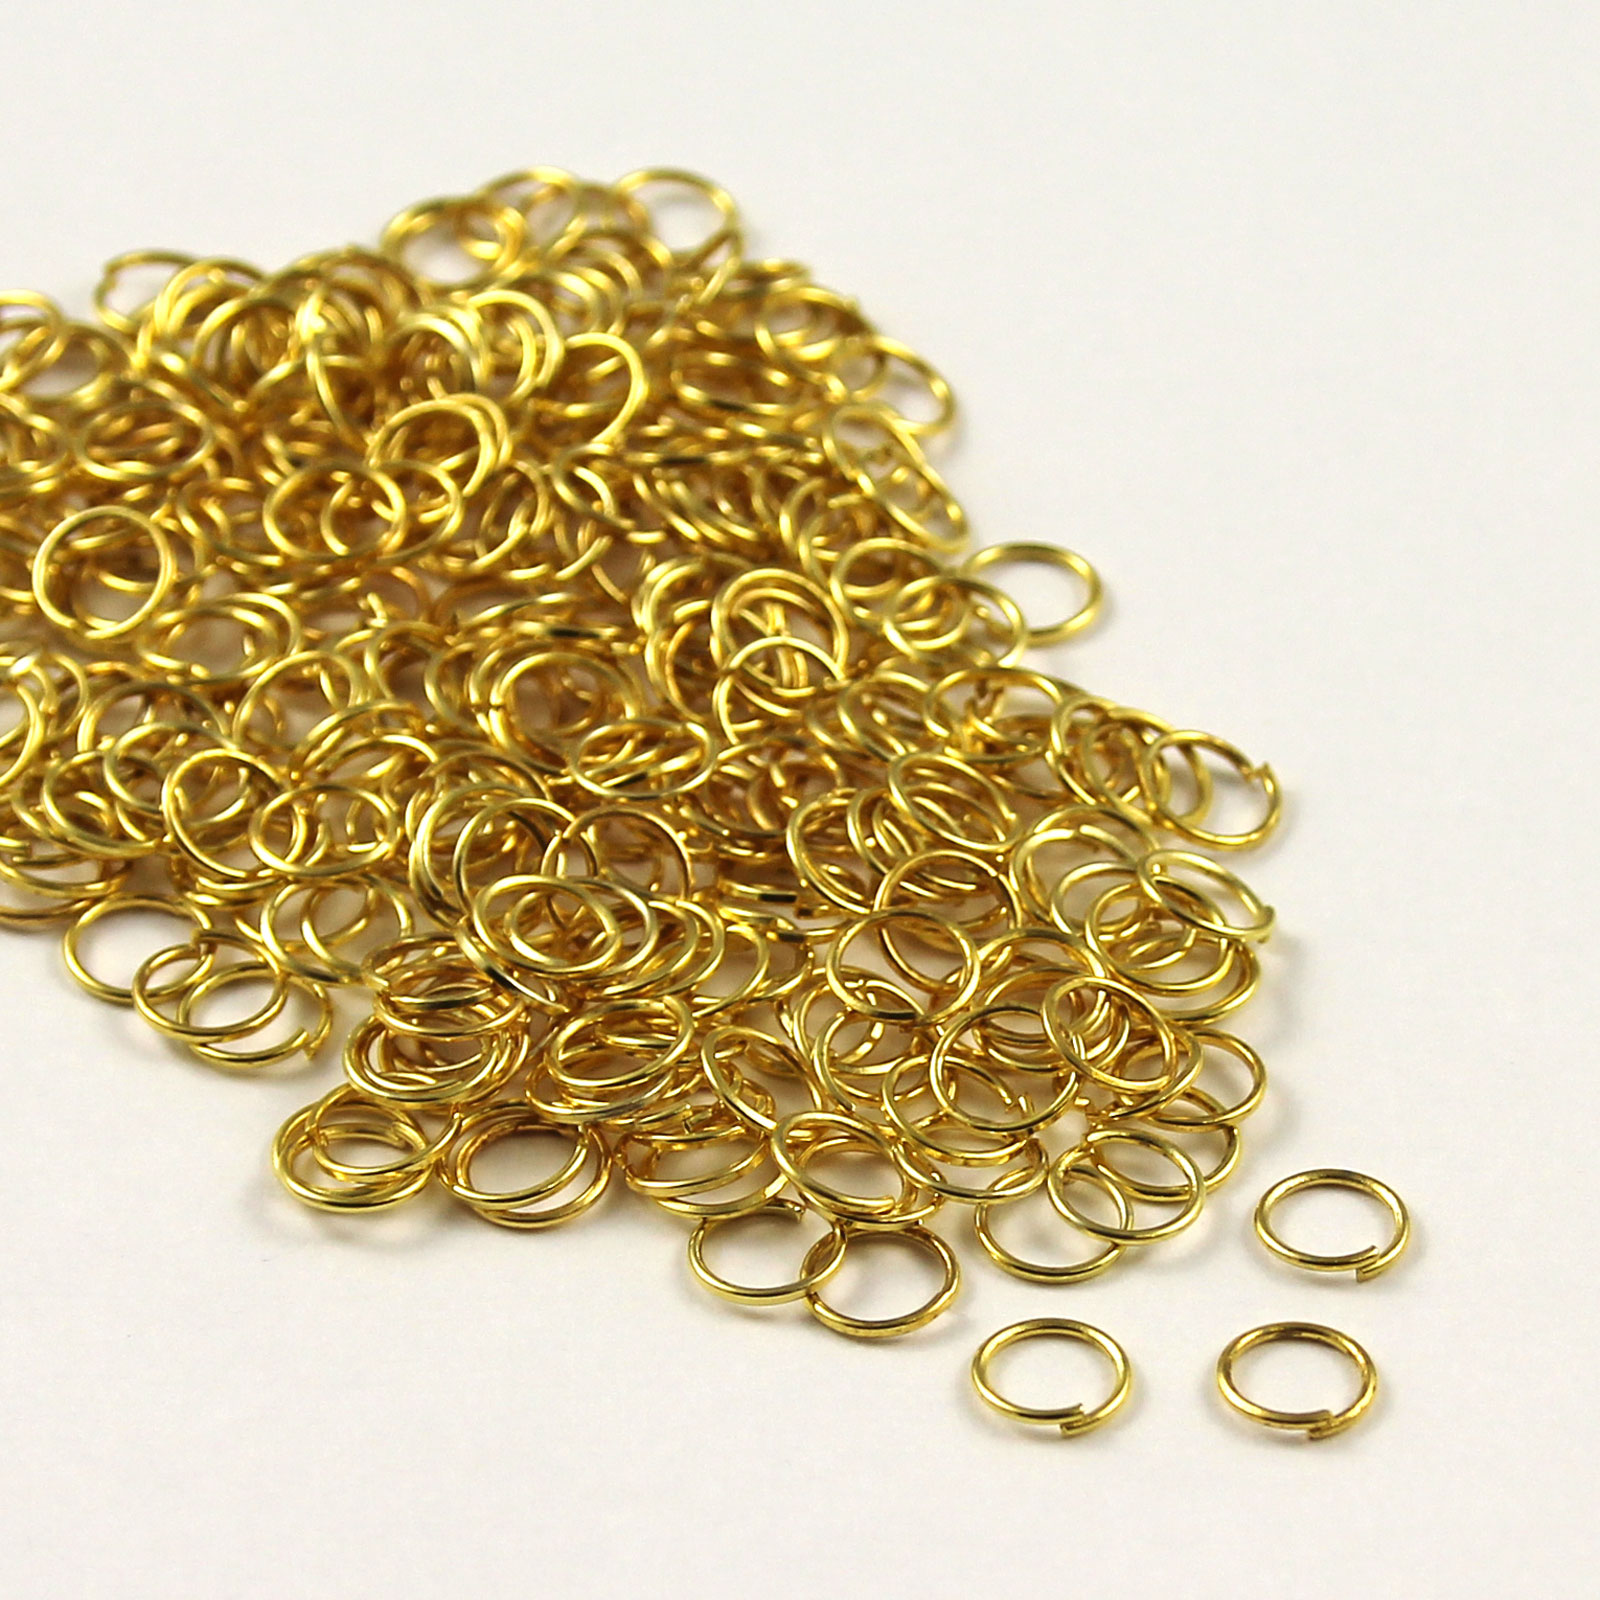 200-500-Bronze-Gold-amp-Silver-Plated-Metal-Jump-Rings-Jewellery-Making-4-10mm